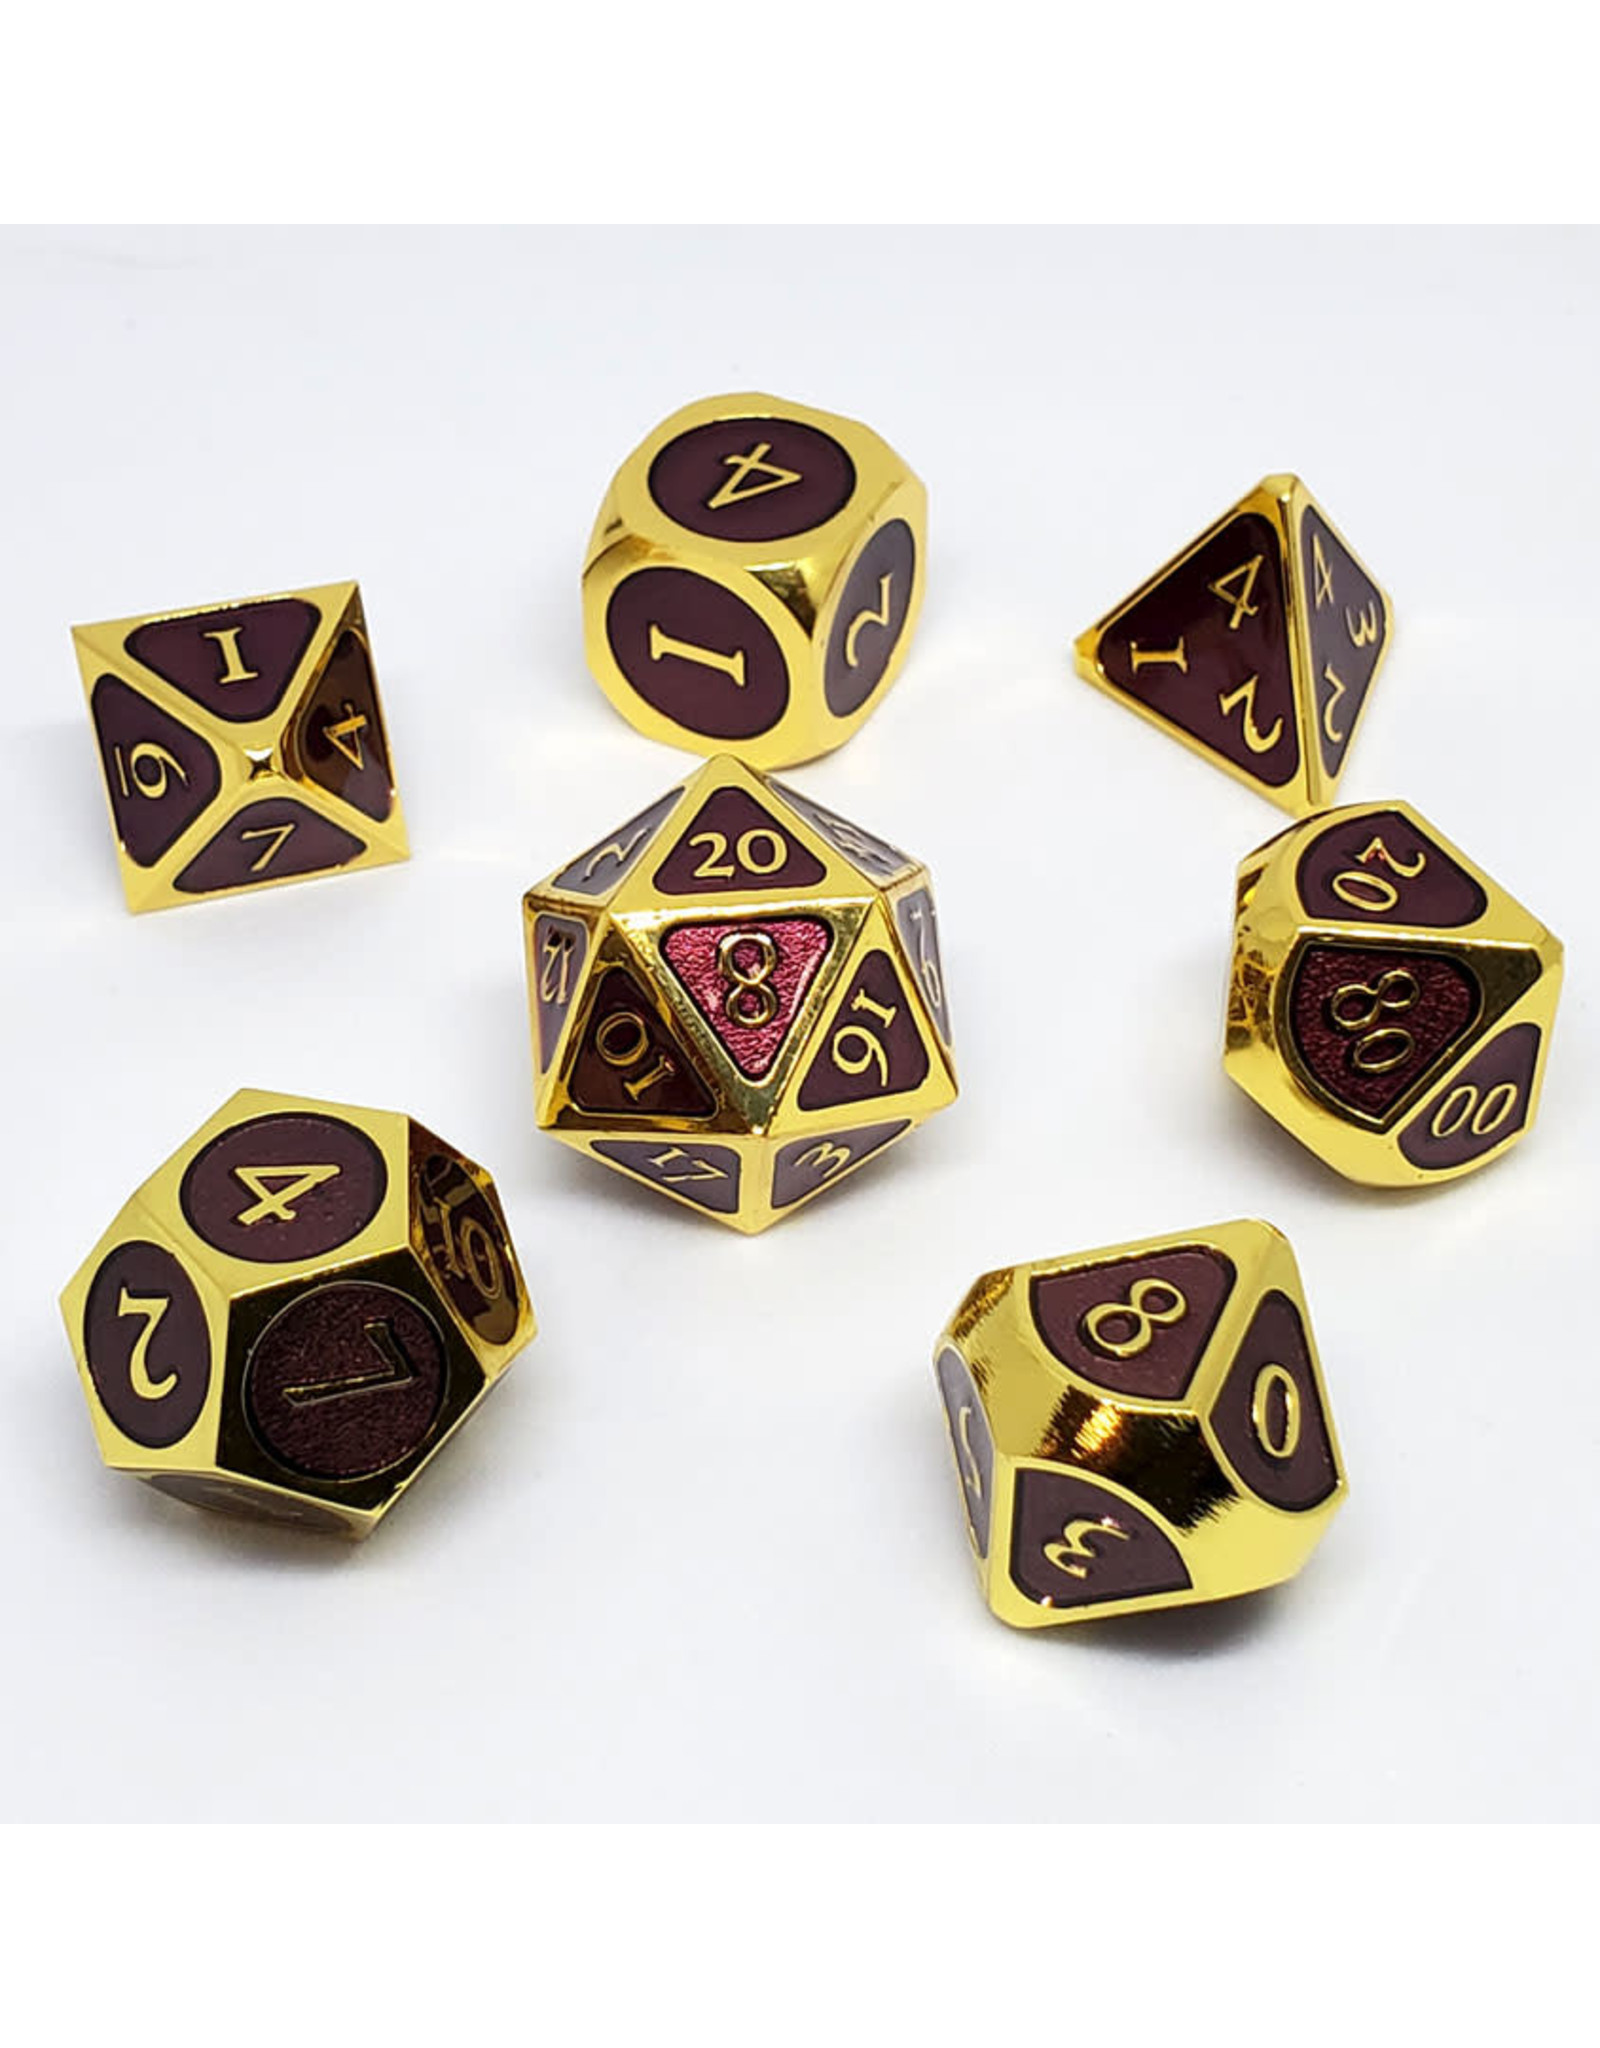 16MM MDG METAL POLY DICE SET GOLD WITH PURPLE ENAMEL